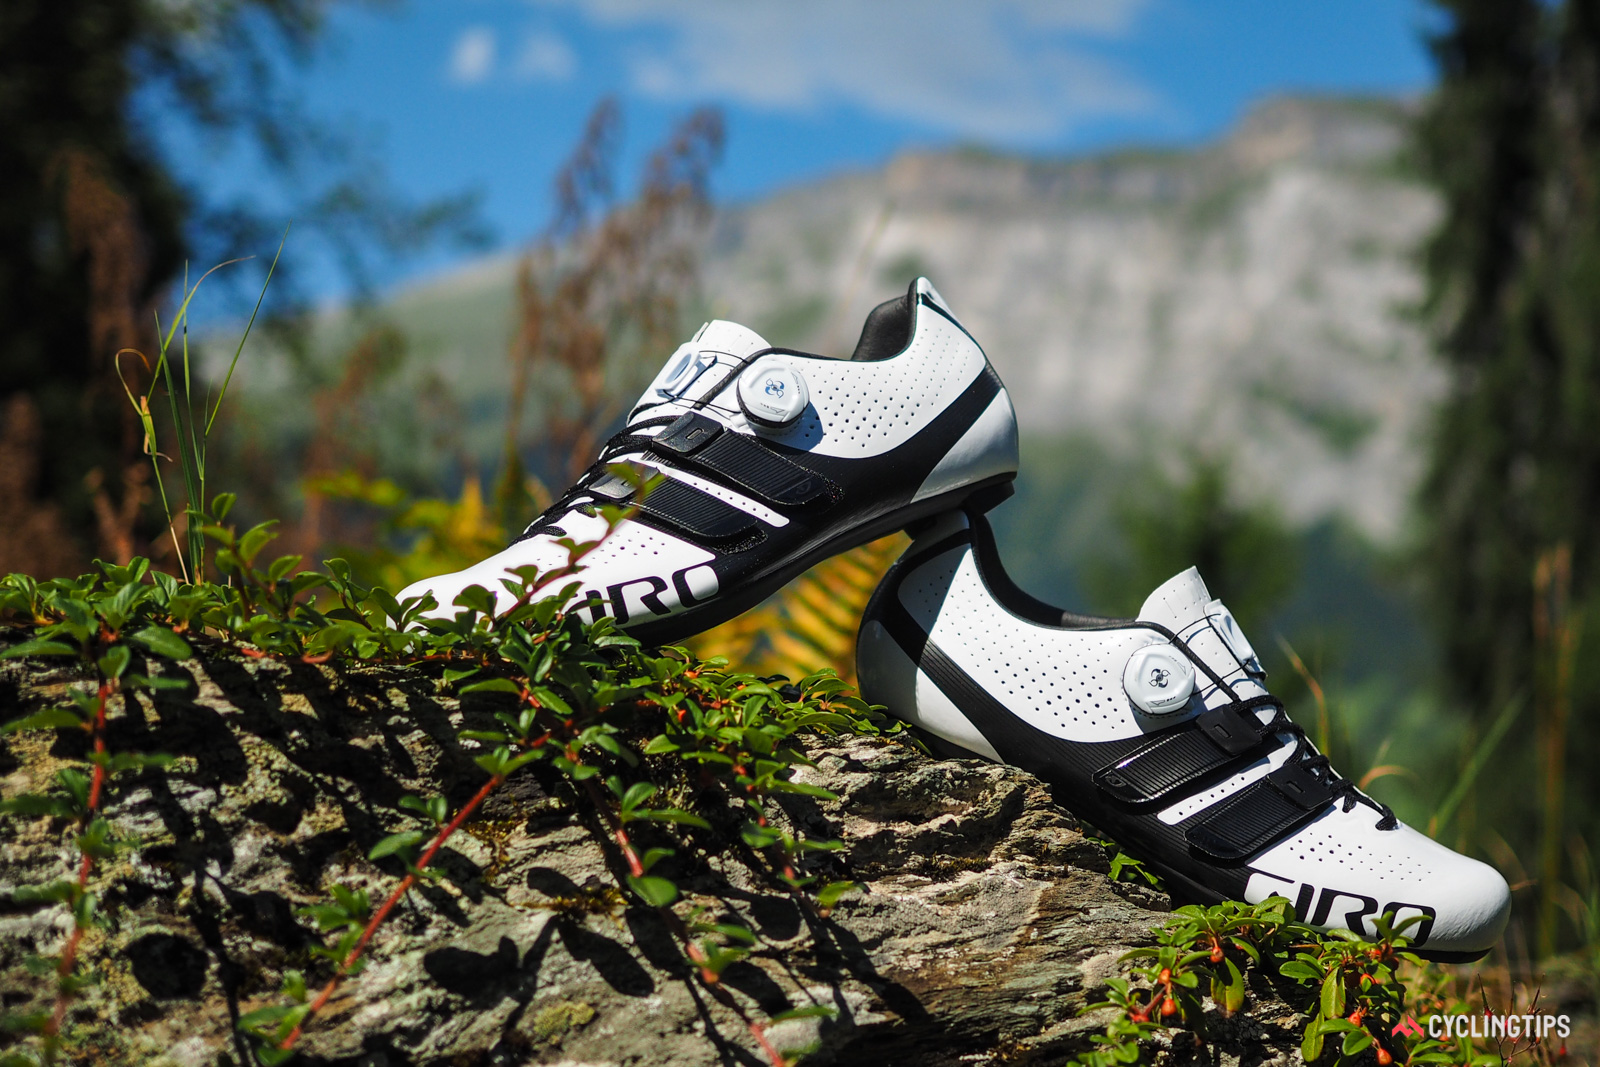 Giro's new Factor Techlace blends Boa, hook-and-loop, and lace closures in one road shoe. The single Boa IP1 cable reel is used as the primary closure to really lock your foot in place, and Giro will offer the dials in four different colors for customization.